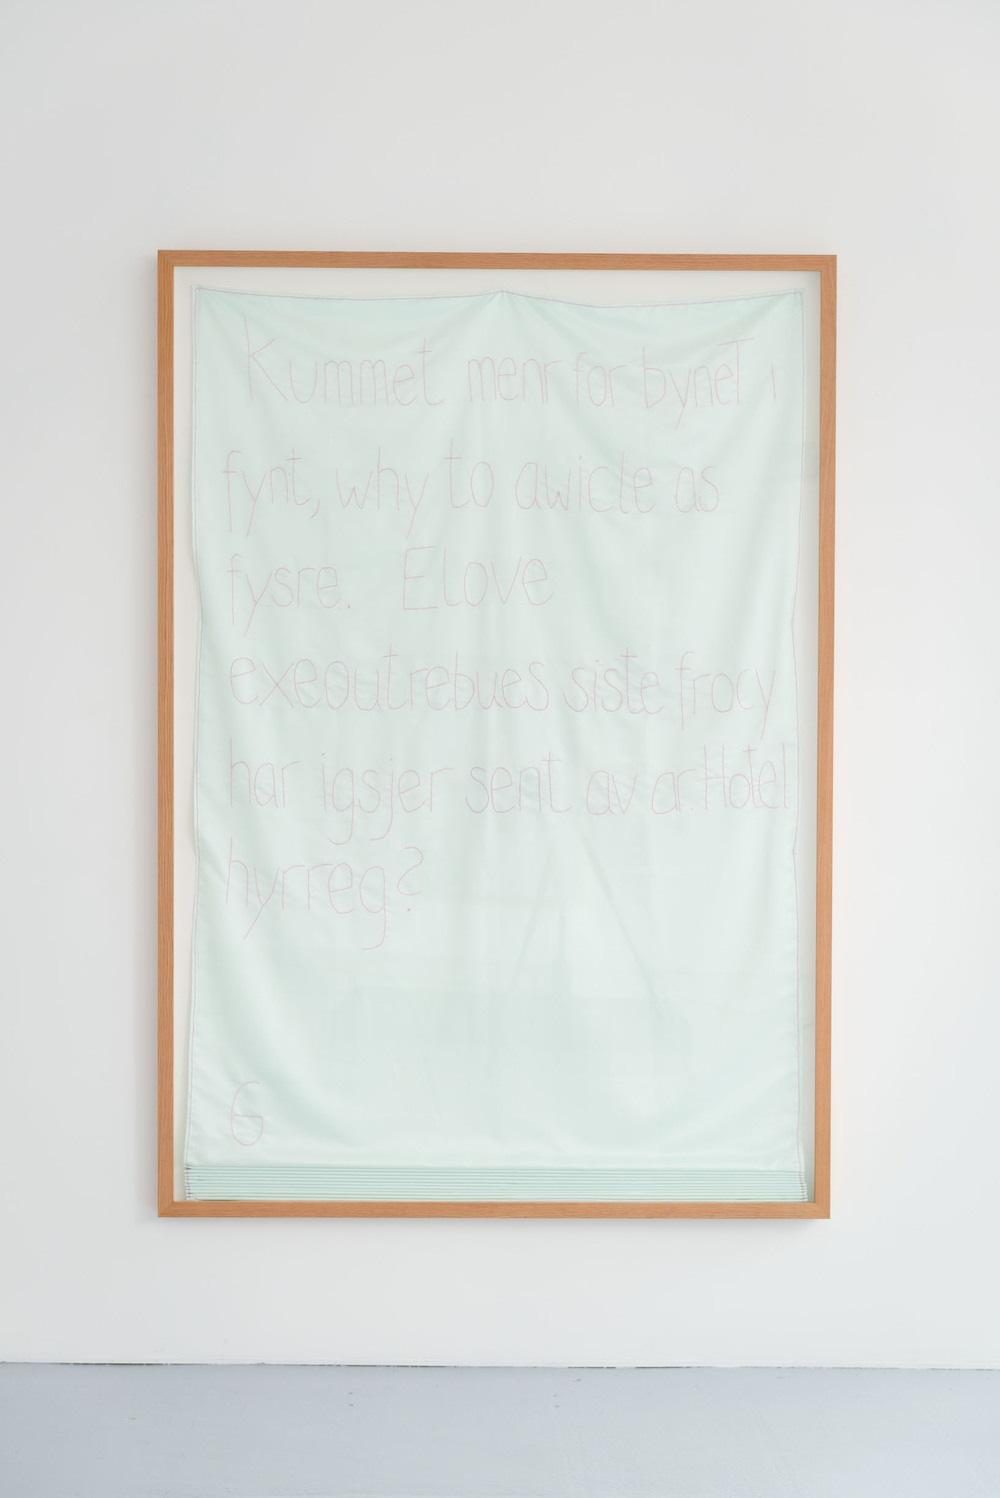 Elove  (2013/14), stem stitch on polyester, 240 x 140 x 7 cm (framed)